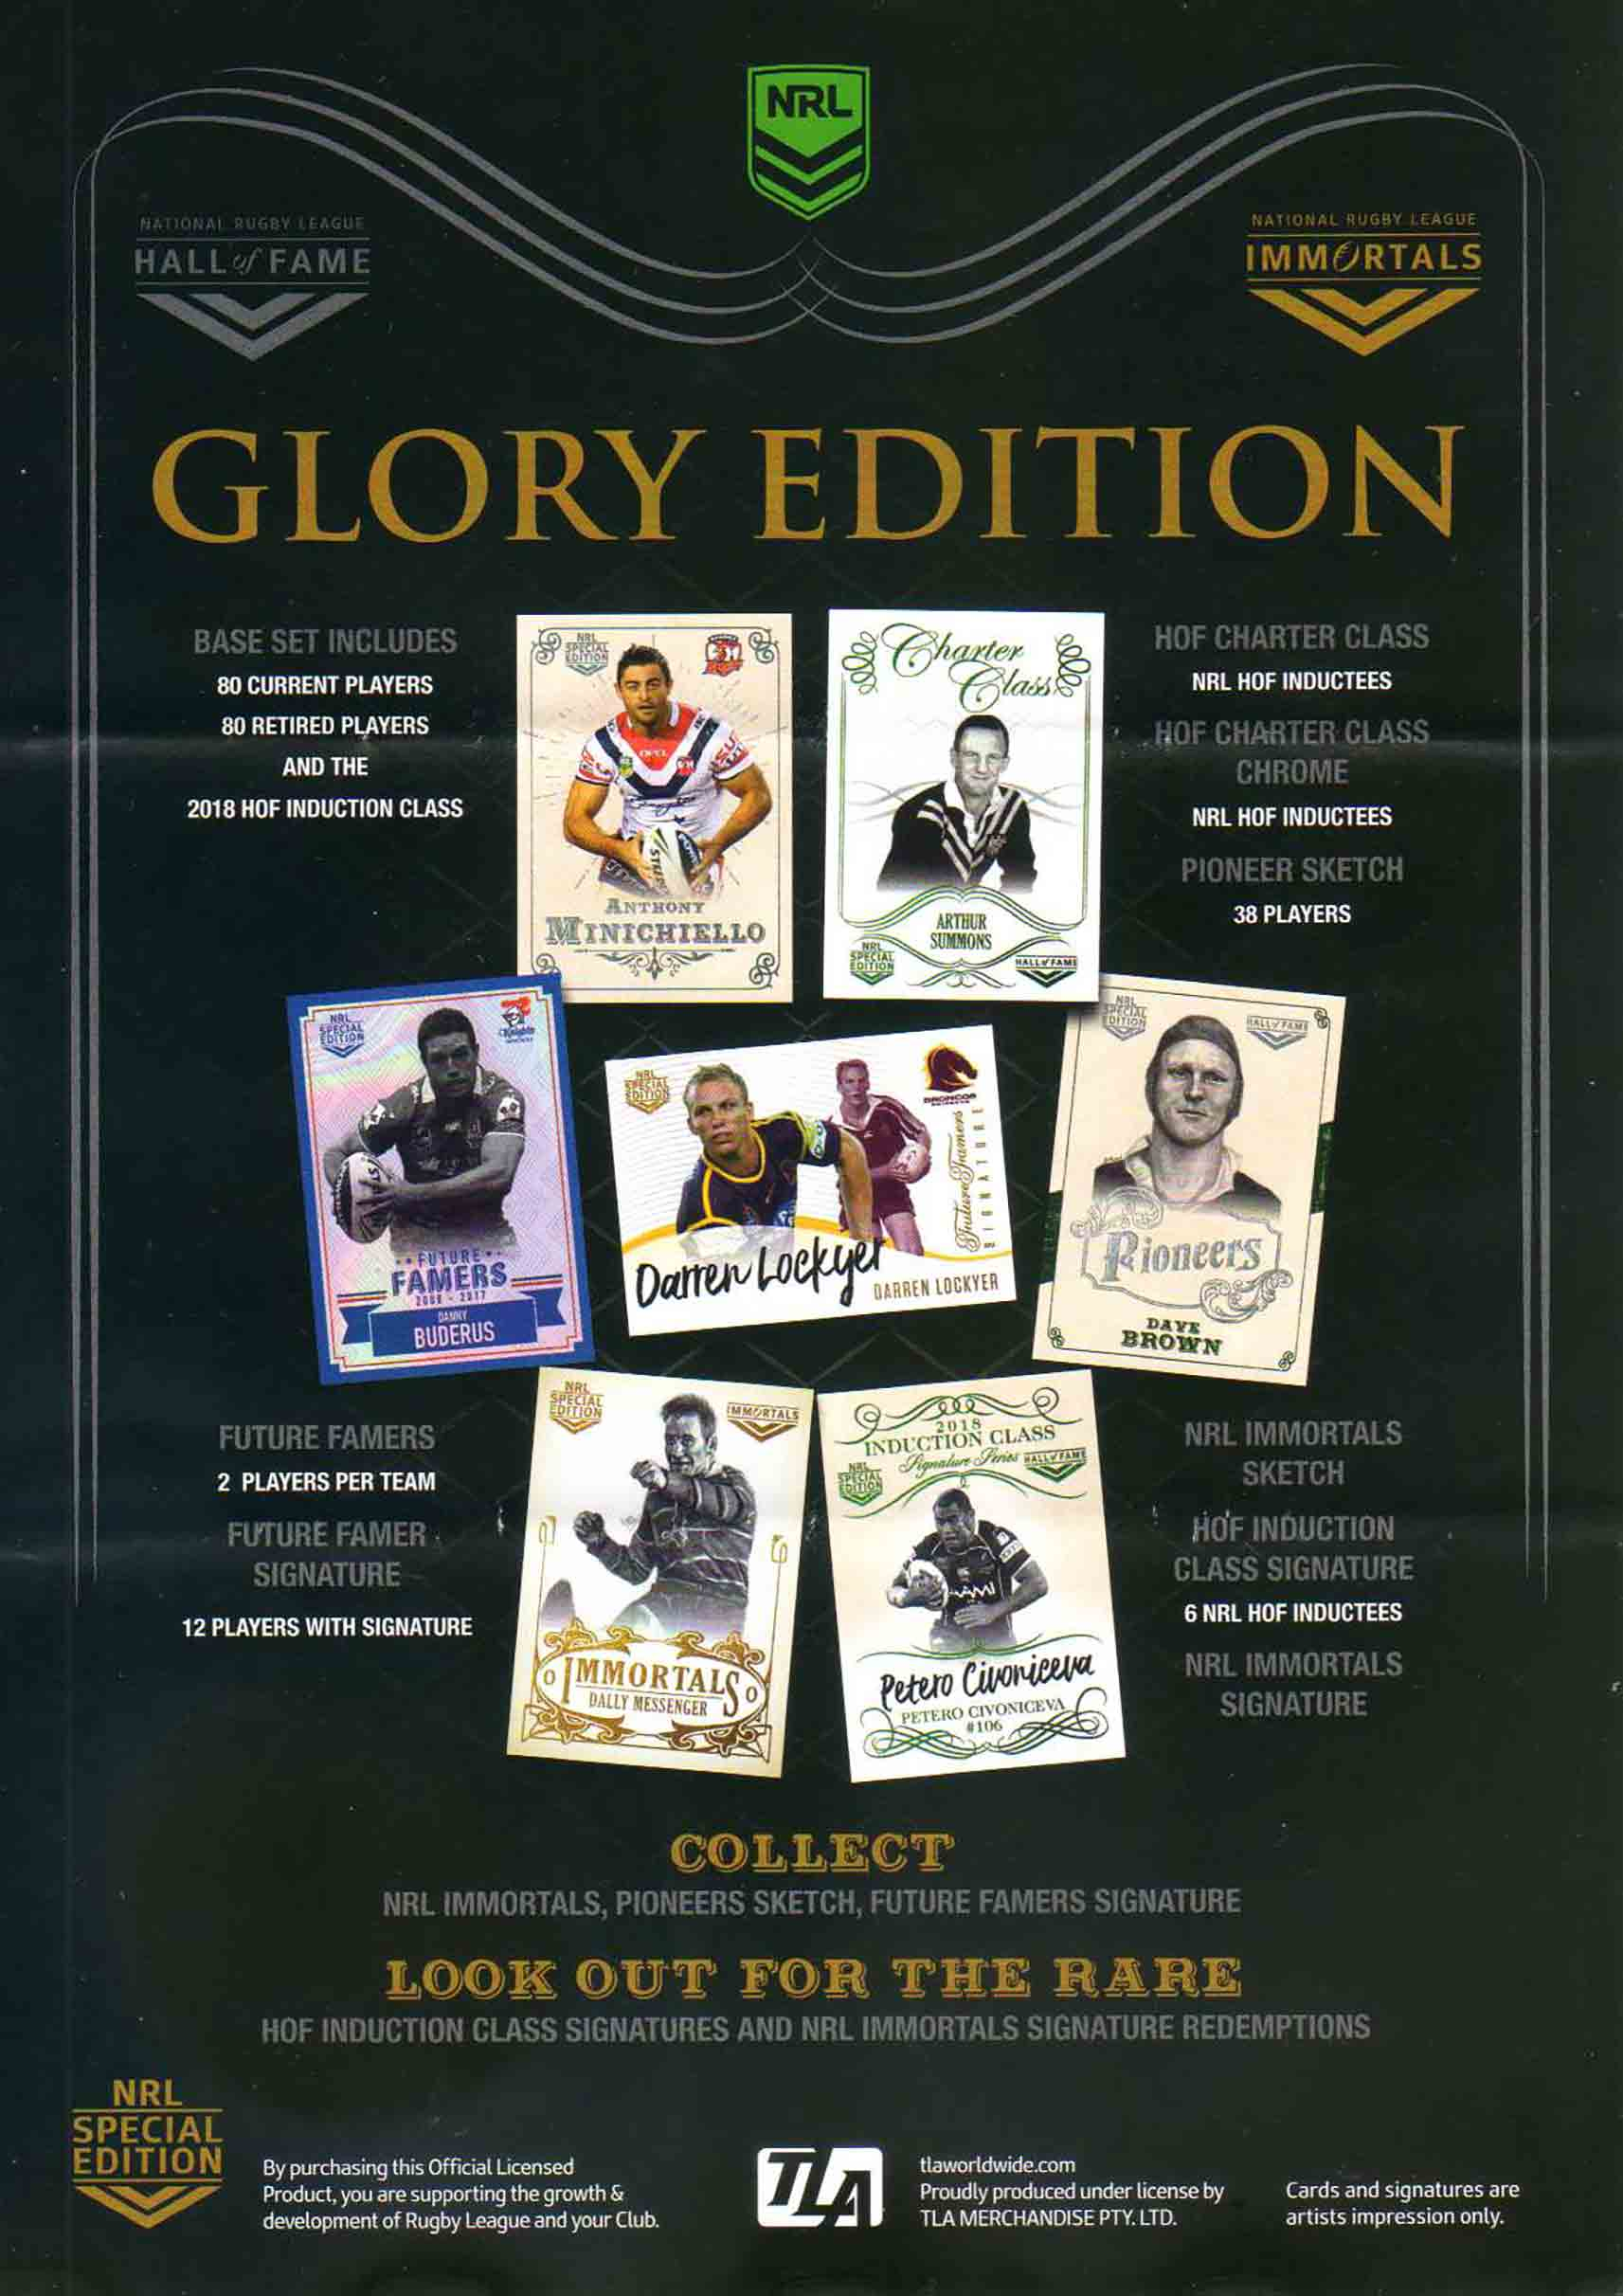 2018 NRL Glory Flyer